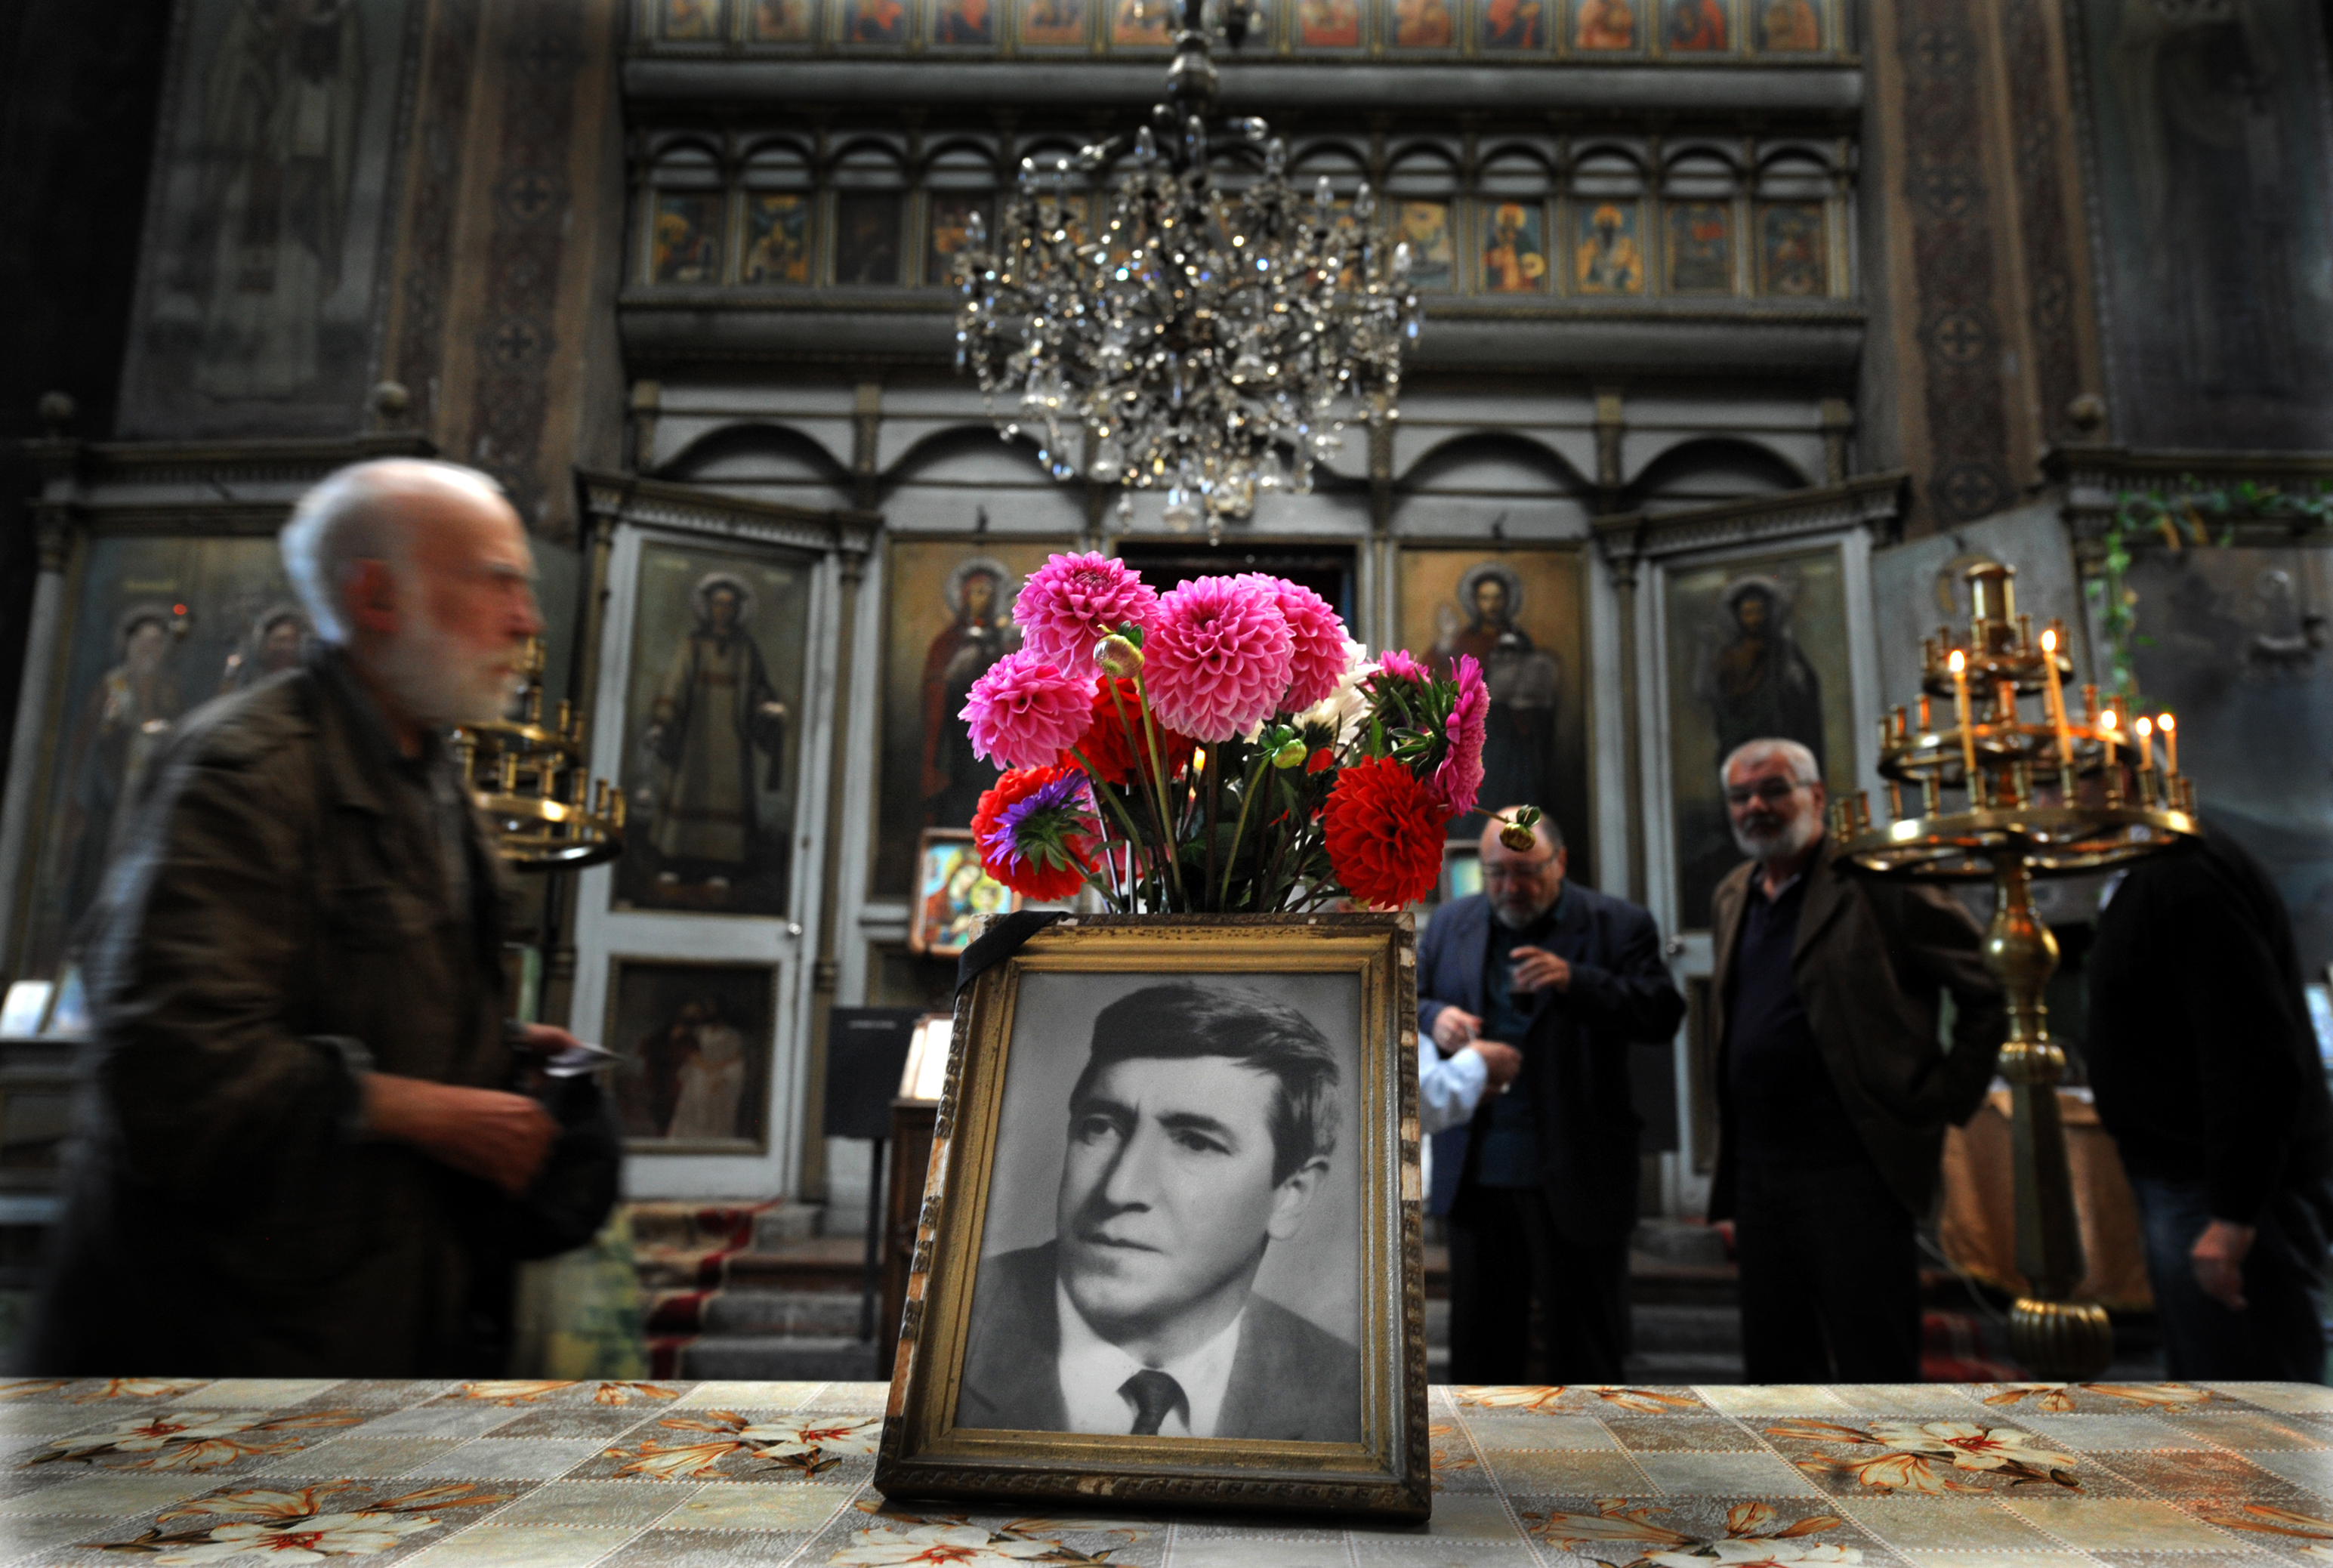 People attend a commemoration service marking 35 years of the dead of Georgi Markov, a bulgarian disident killed in London in 1978, in a church in Sofia on September 11, 2013. Bulgaria is set to close a 35-year probe into the spectacular  umbrella killing  of dissident Georgy Markov in London in 1978, the prosecution in Sofia said Monday. Markov's murder has gone down as one of the most daring and extraordinary crimes of the Cold War. The prominent journalist and playwright fled communist Bulgaria in 1969 for Britain but continued to lambast the regime in reports for the BBC and Radio Free Europe.